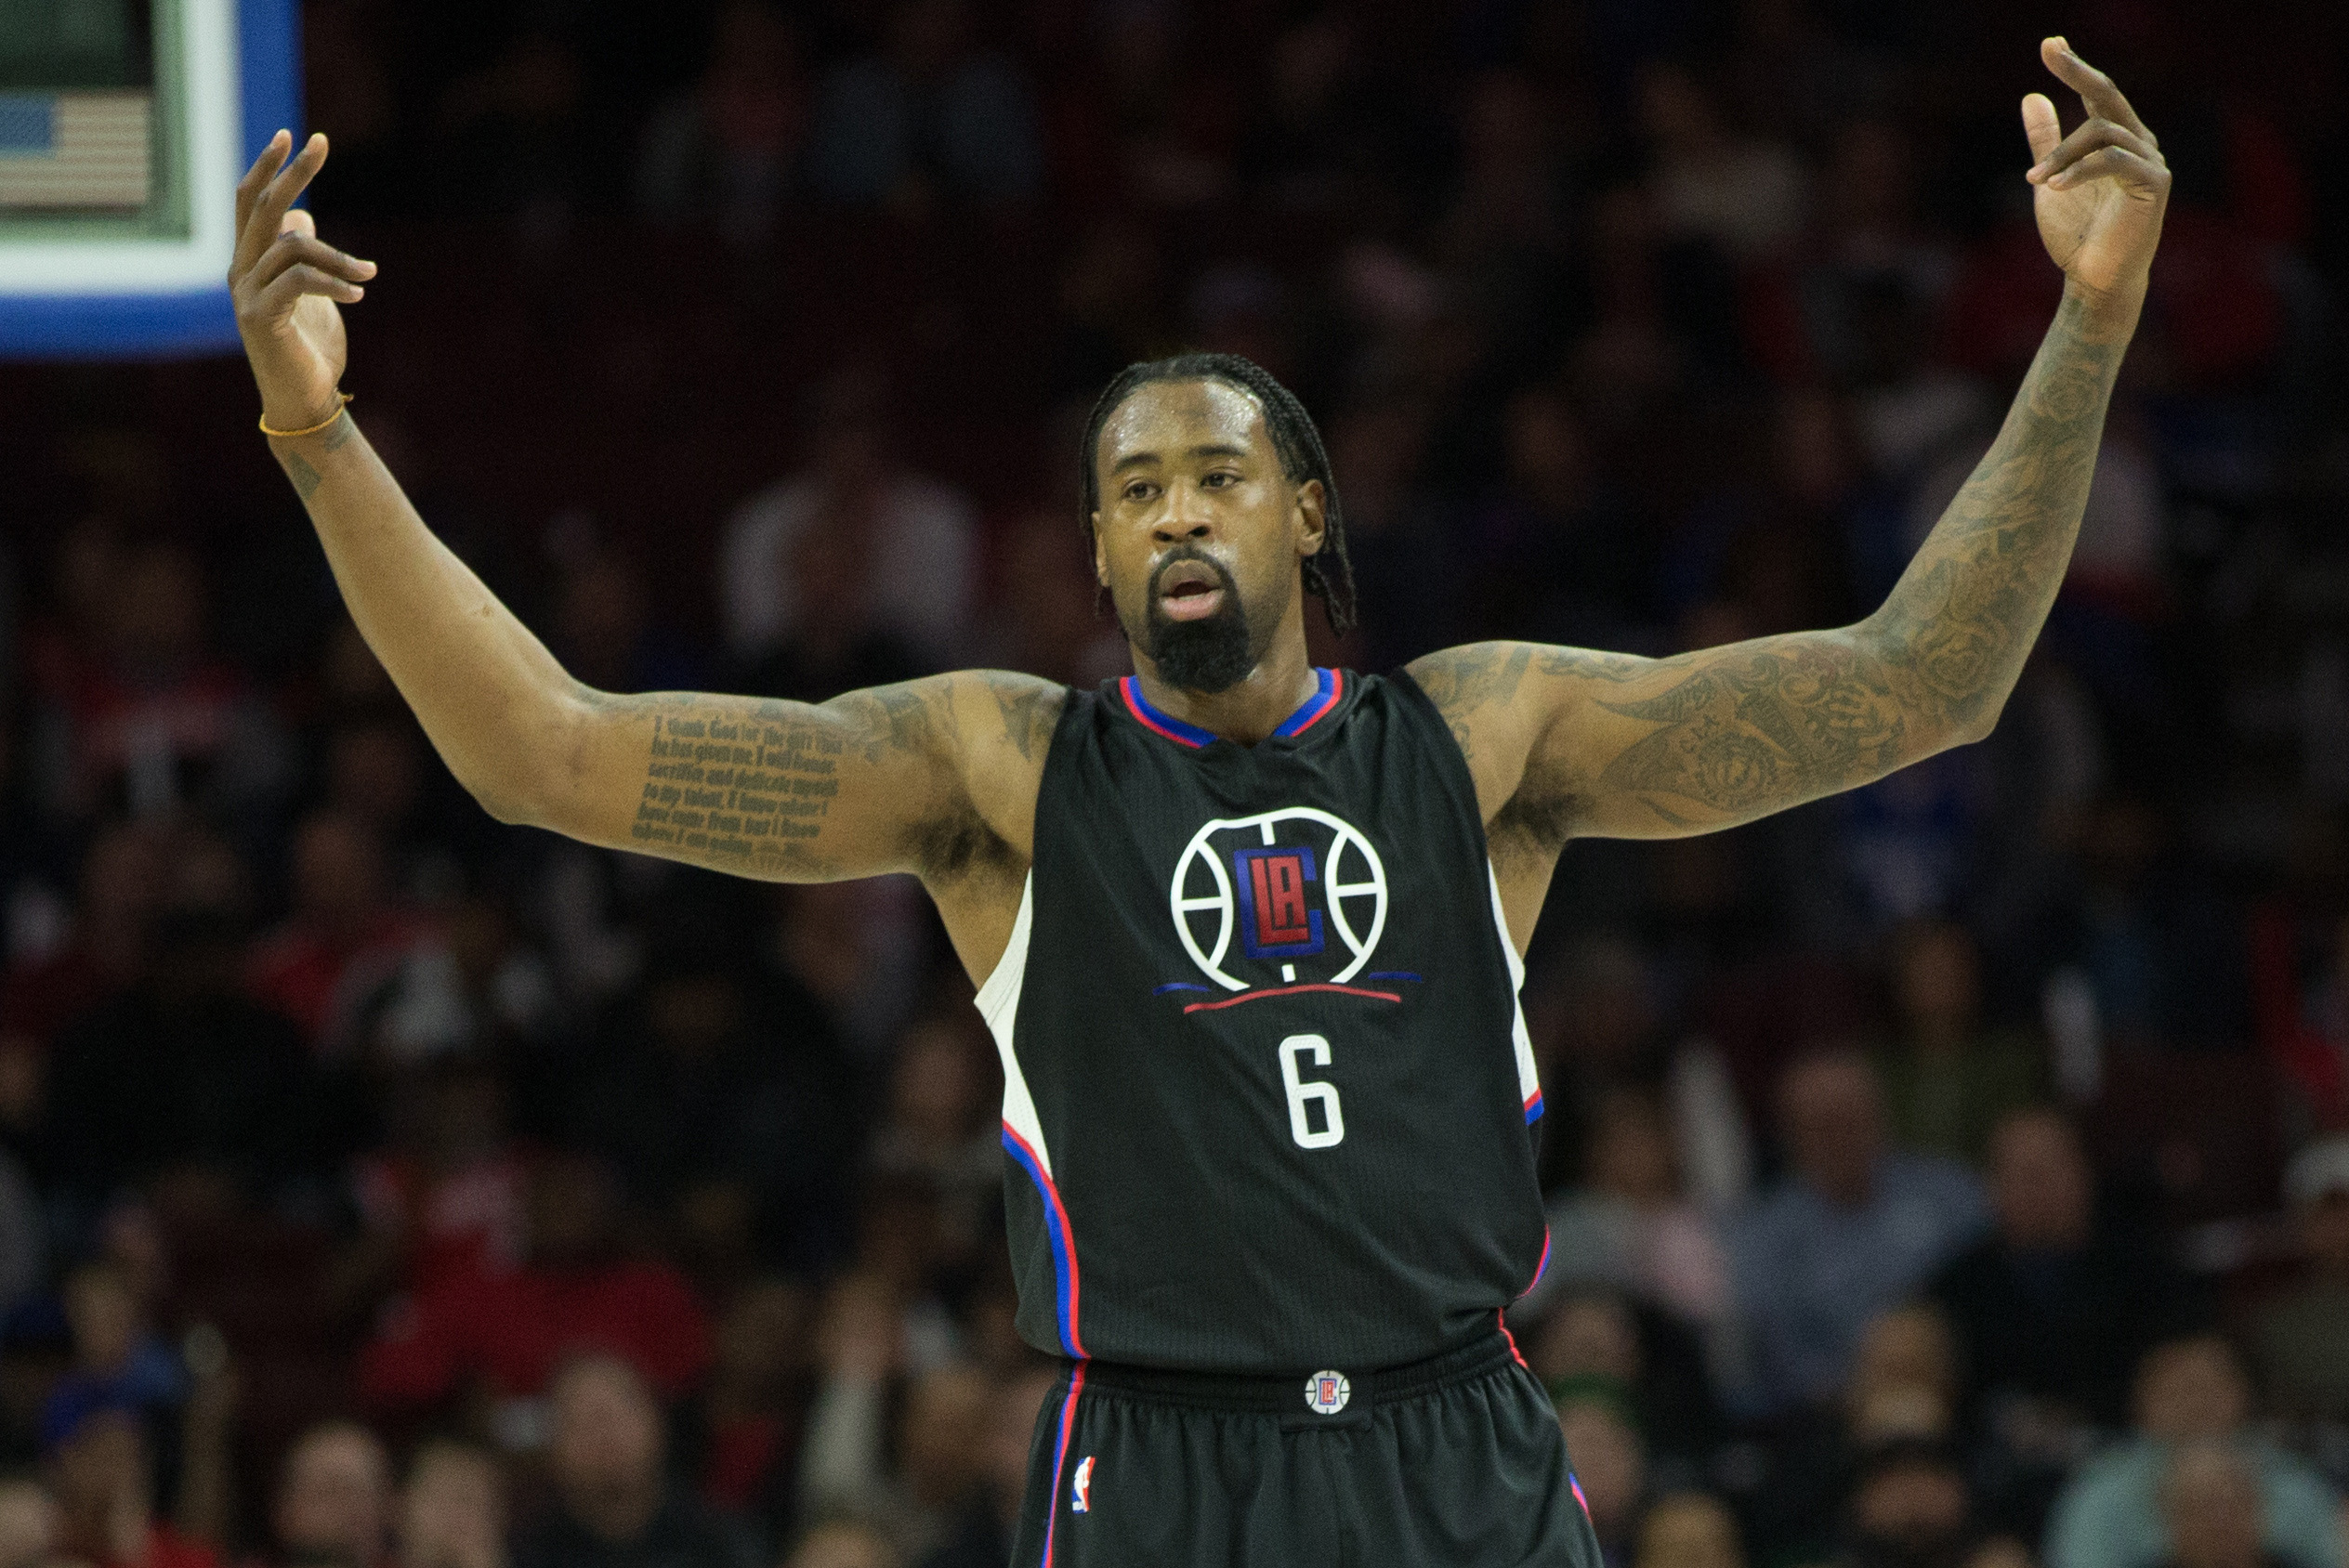 Jan 24, 2017; Philadelphia, PA, USA; LA Clippers center DeAndre Jordan (6) reacts after a score against the Philadelphia 76ers during the first quarter at Wells Fargo Center. Mandatory Credit: Bill Streicher-USA TODAY Sports